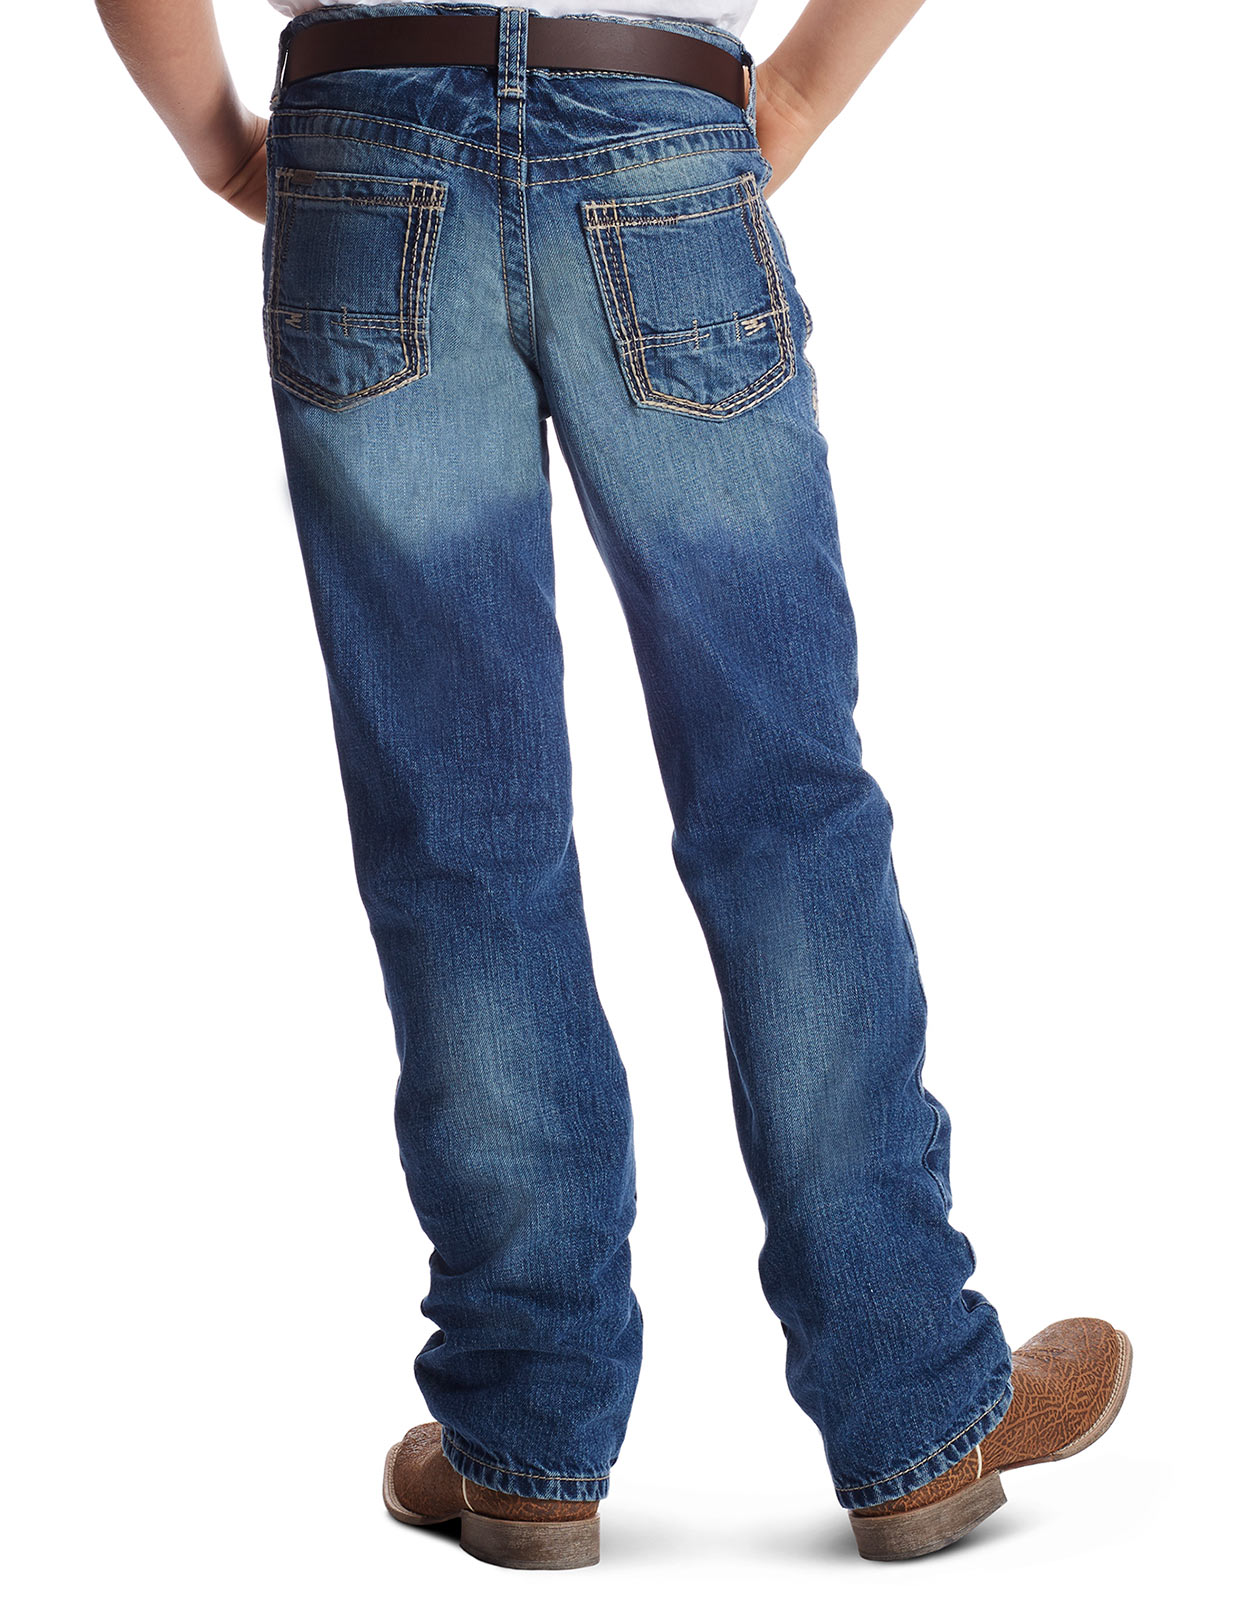 Ariat Boy's B4 Low Rise Relaxed Fit Boot Cut Jeans - Dakota